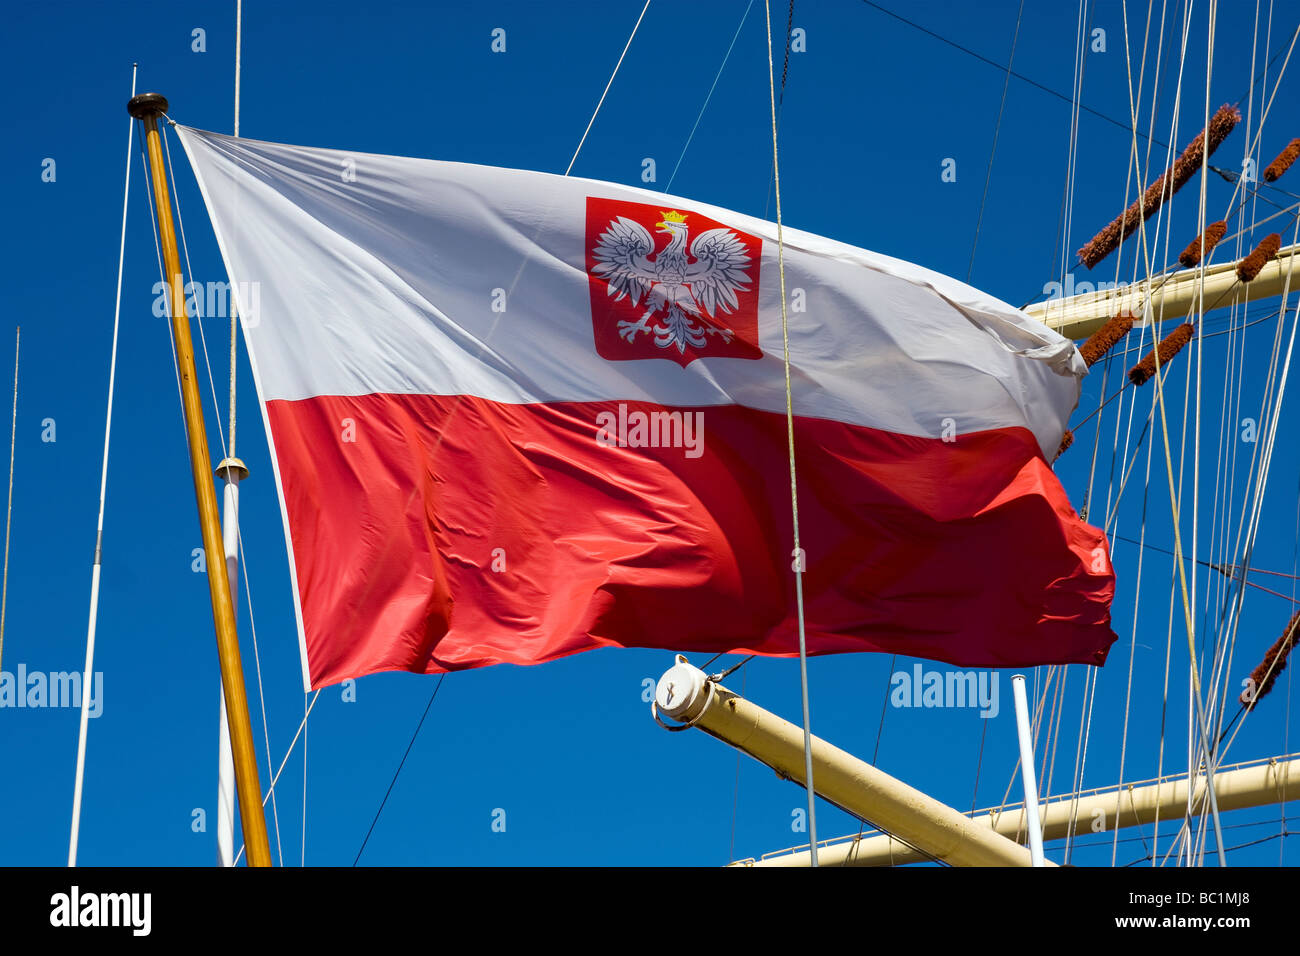 Flag of Poland at DAR MLODZIEZY sail ship during the stay in St Petersburg Russia 21 06 2009 - Stock Image